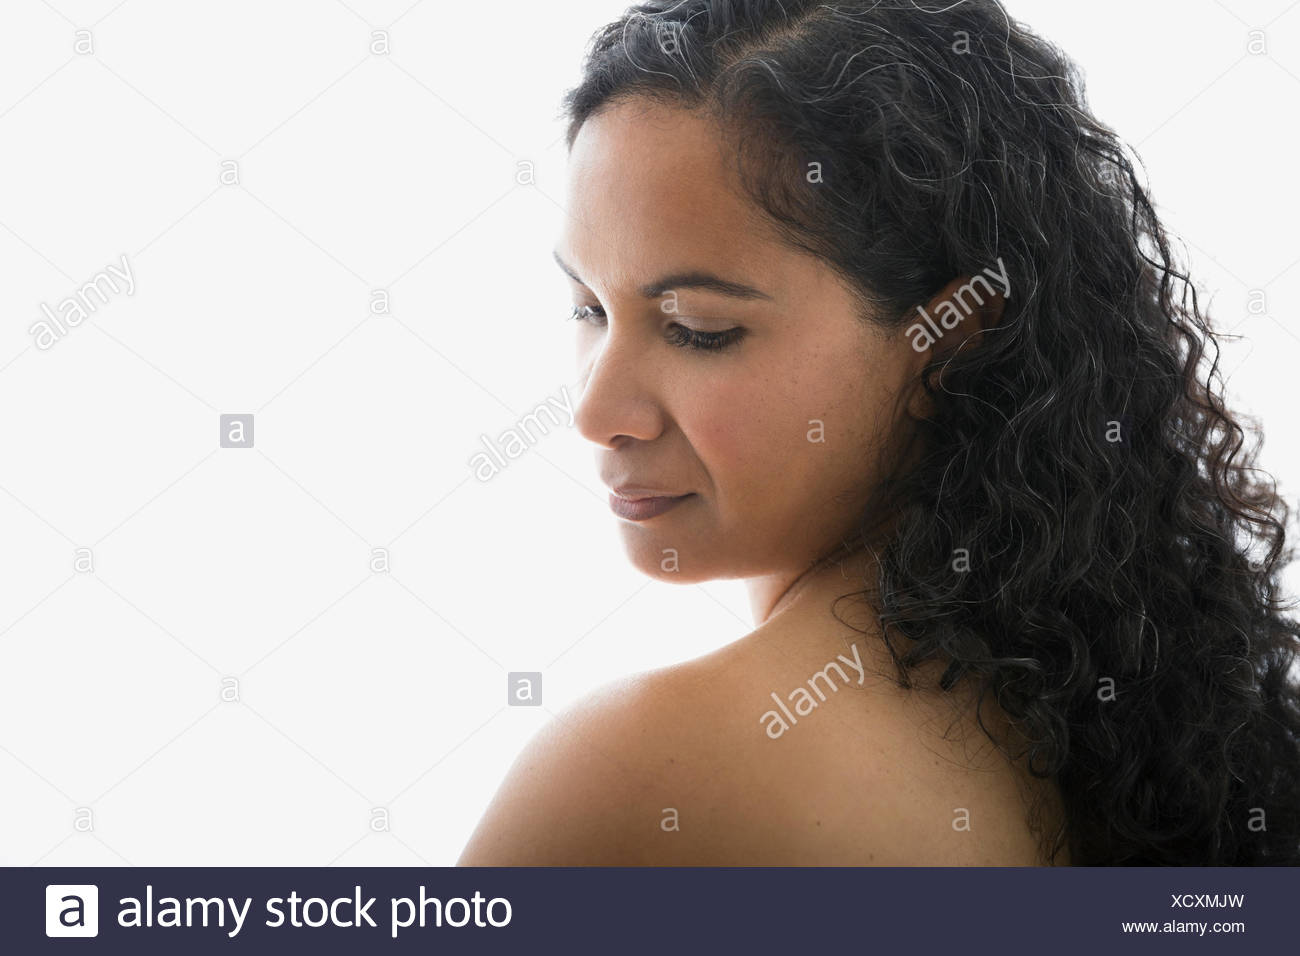 Woman with curly hair looking down at shoulder - Stock Image